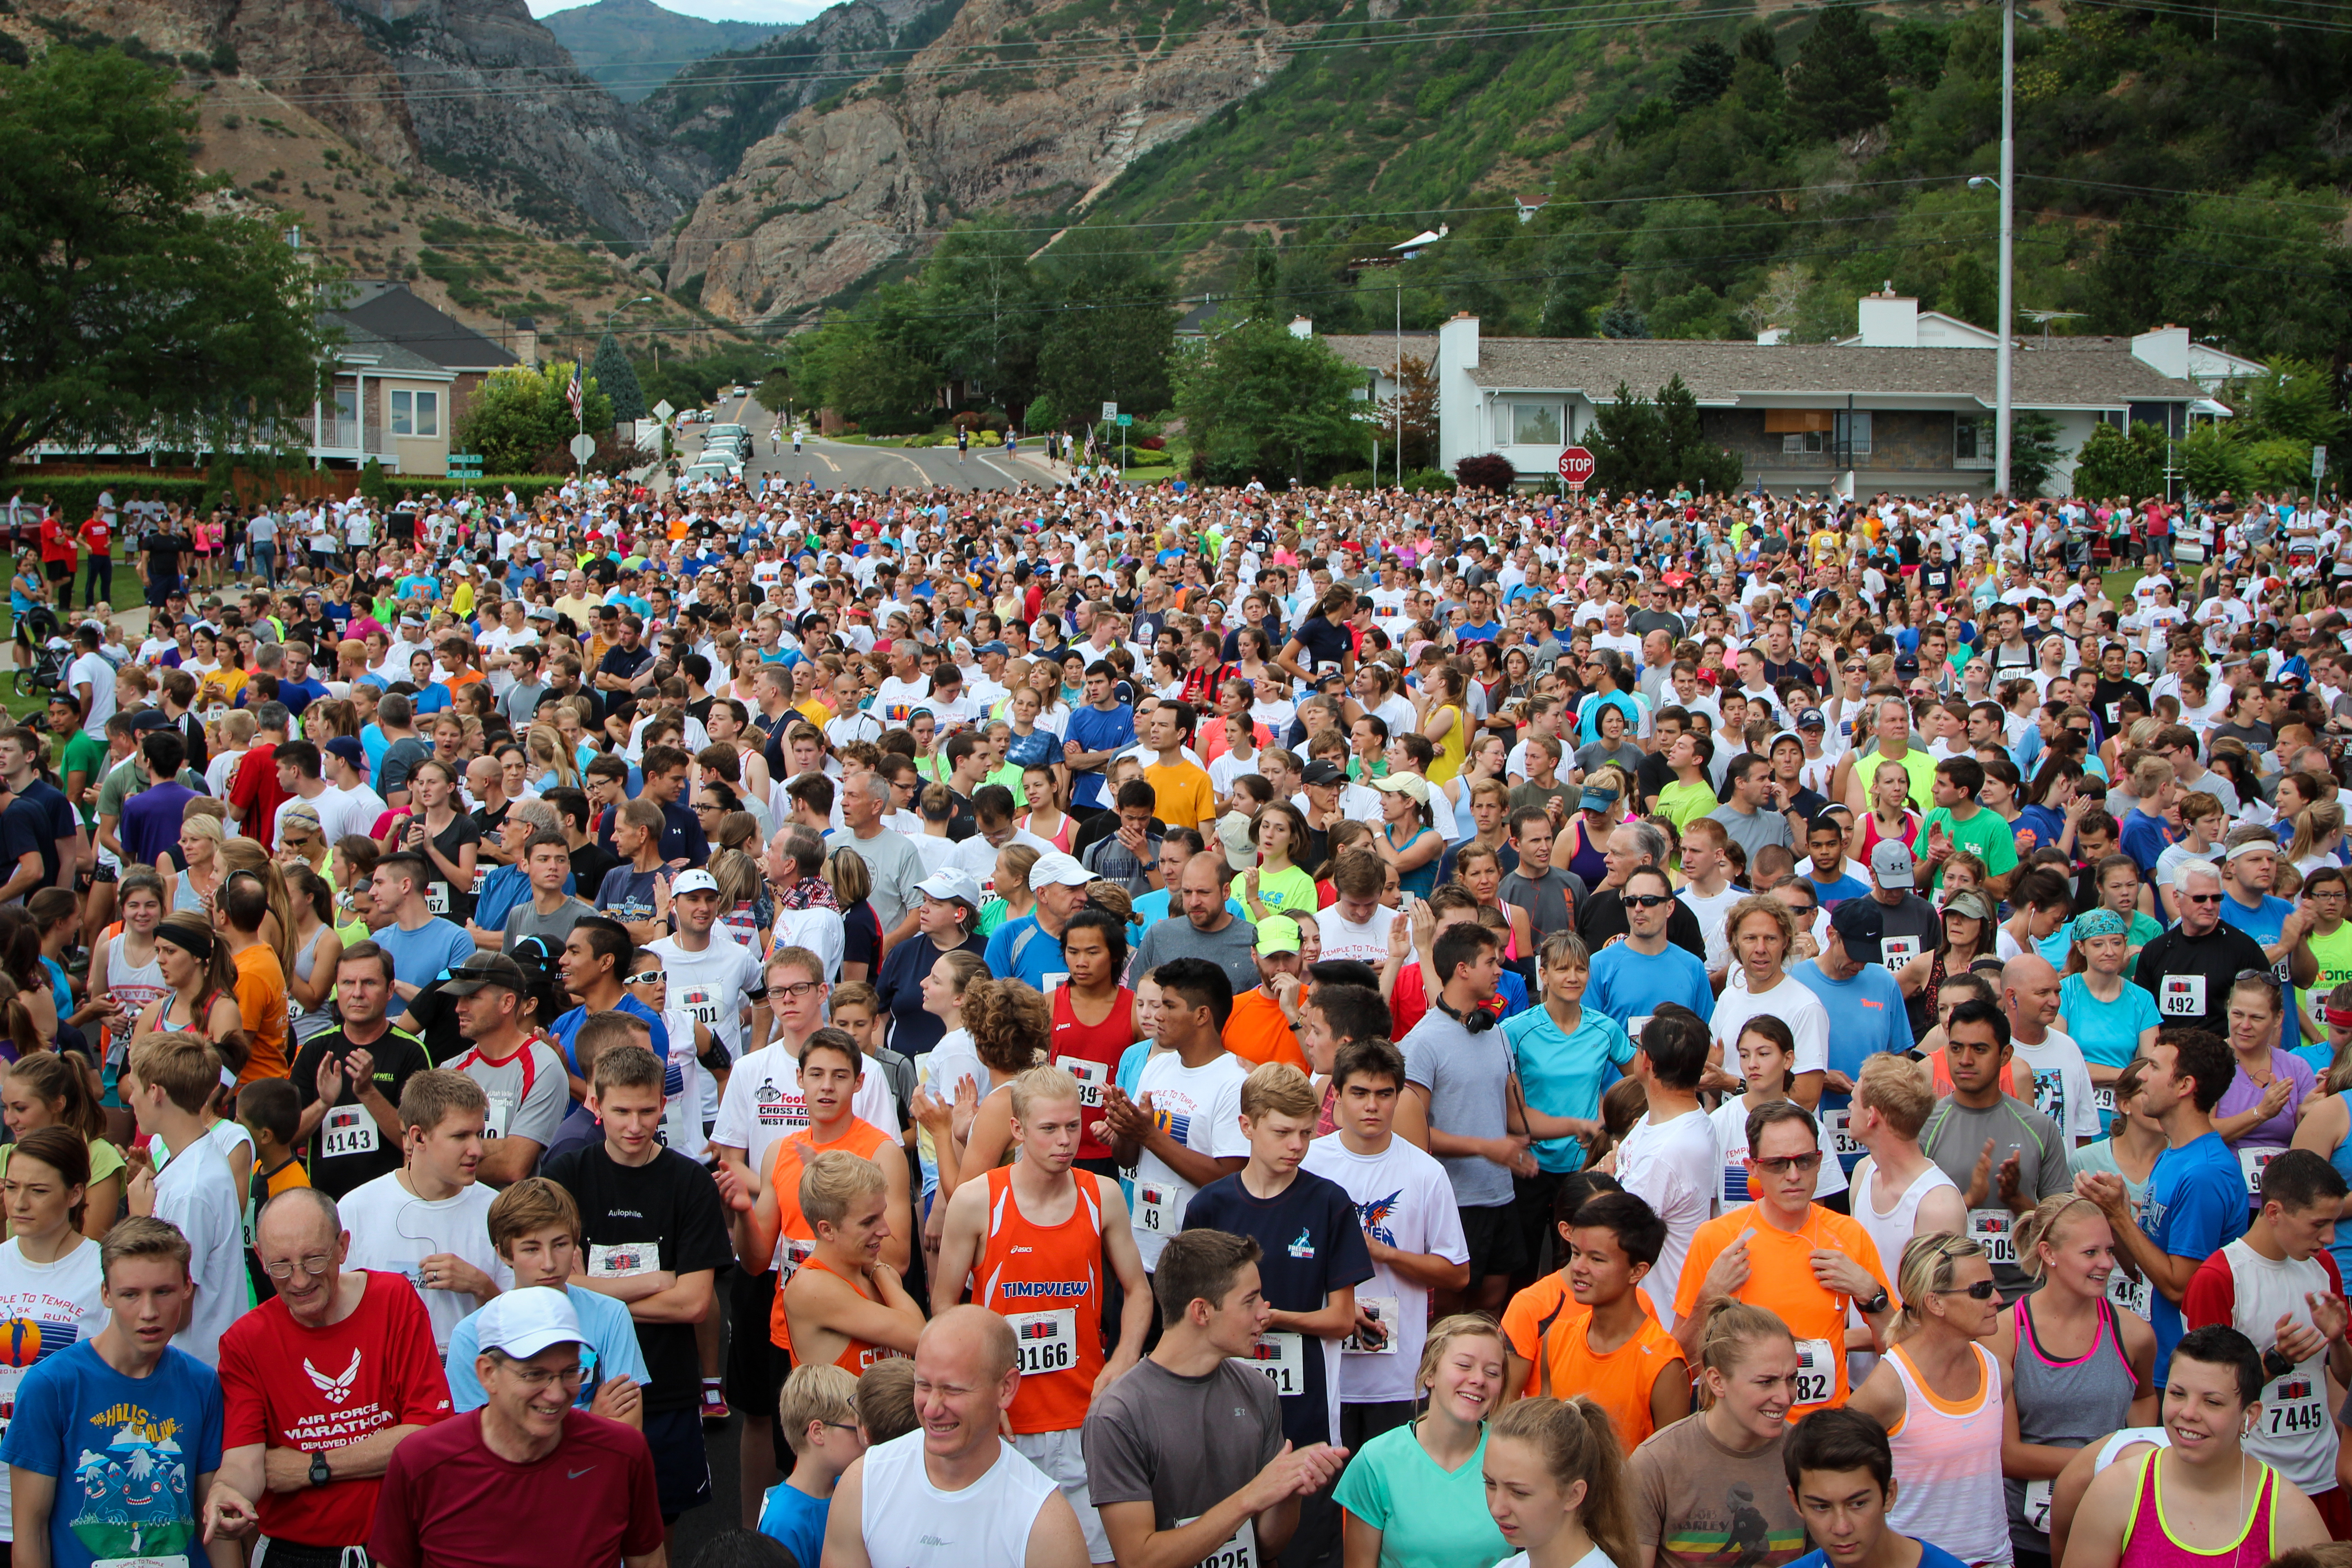 Participants get ready for the Temple to Temple 5k to start. Around 10,000 people came out for the race last year. (Fesler Films)